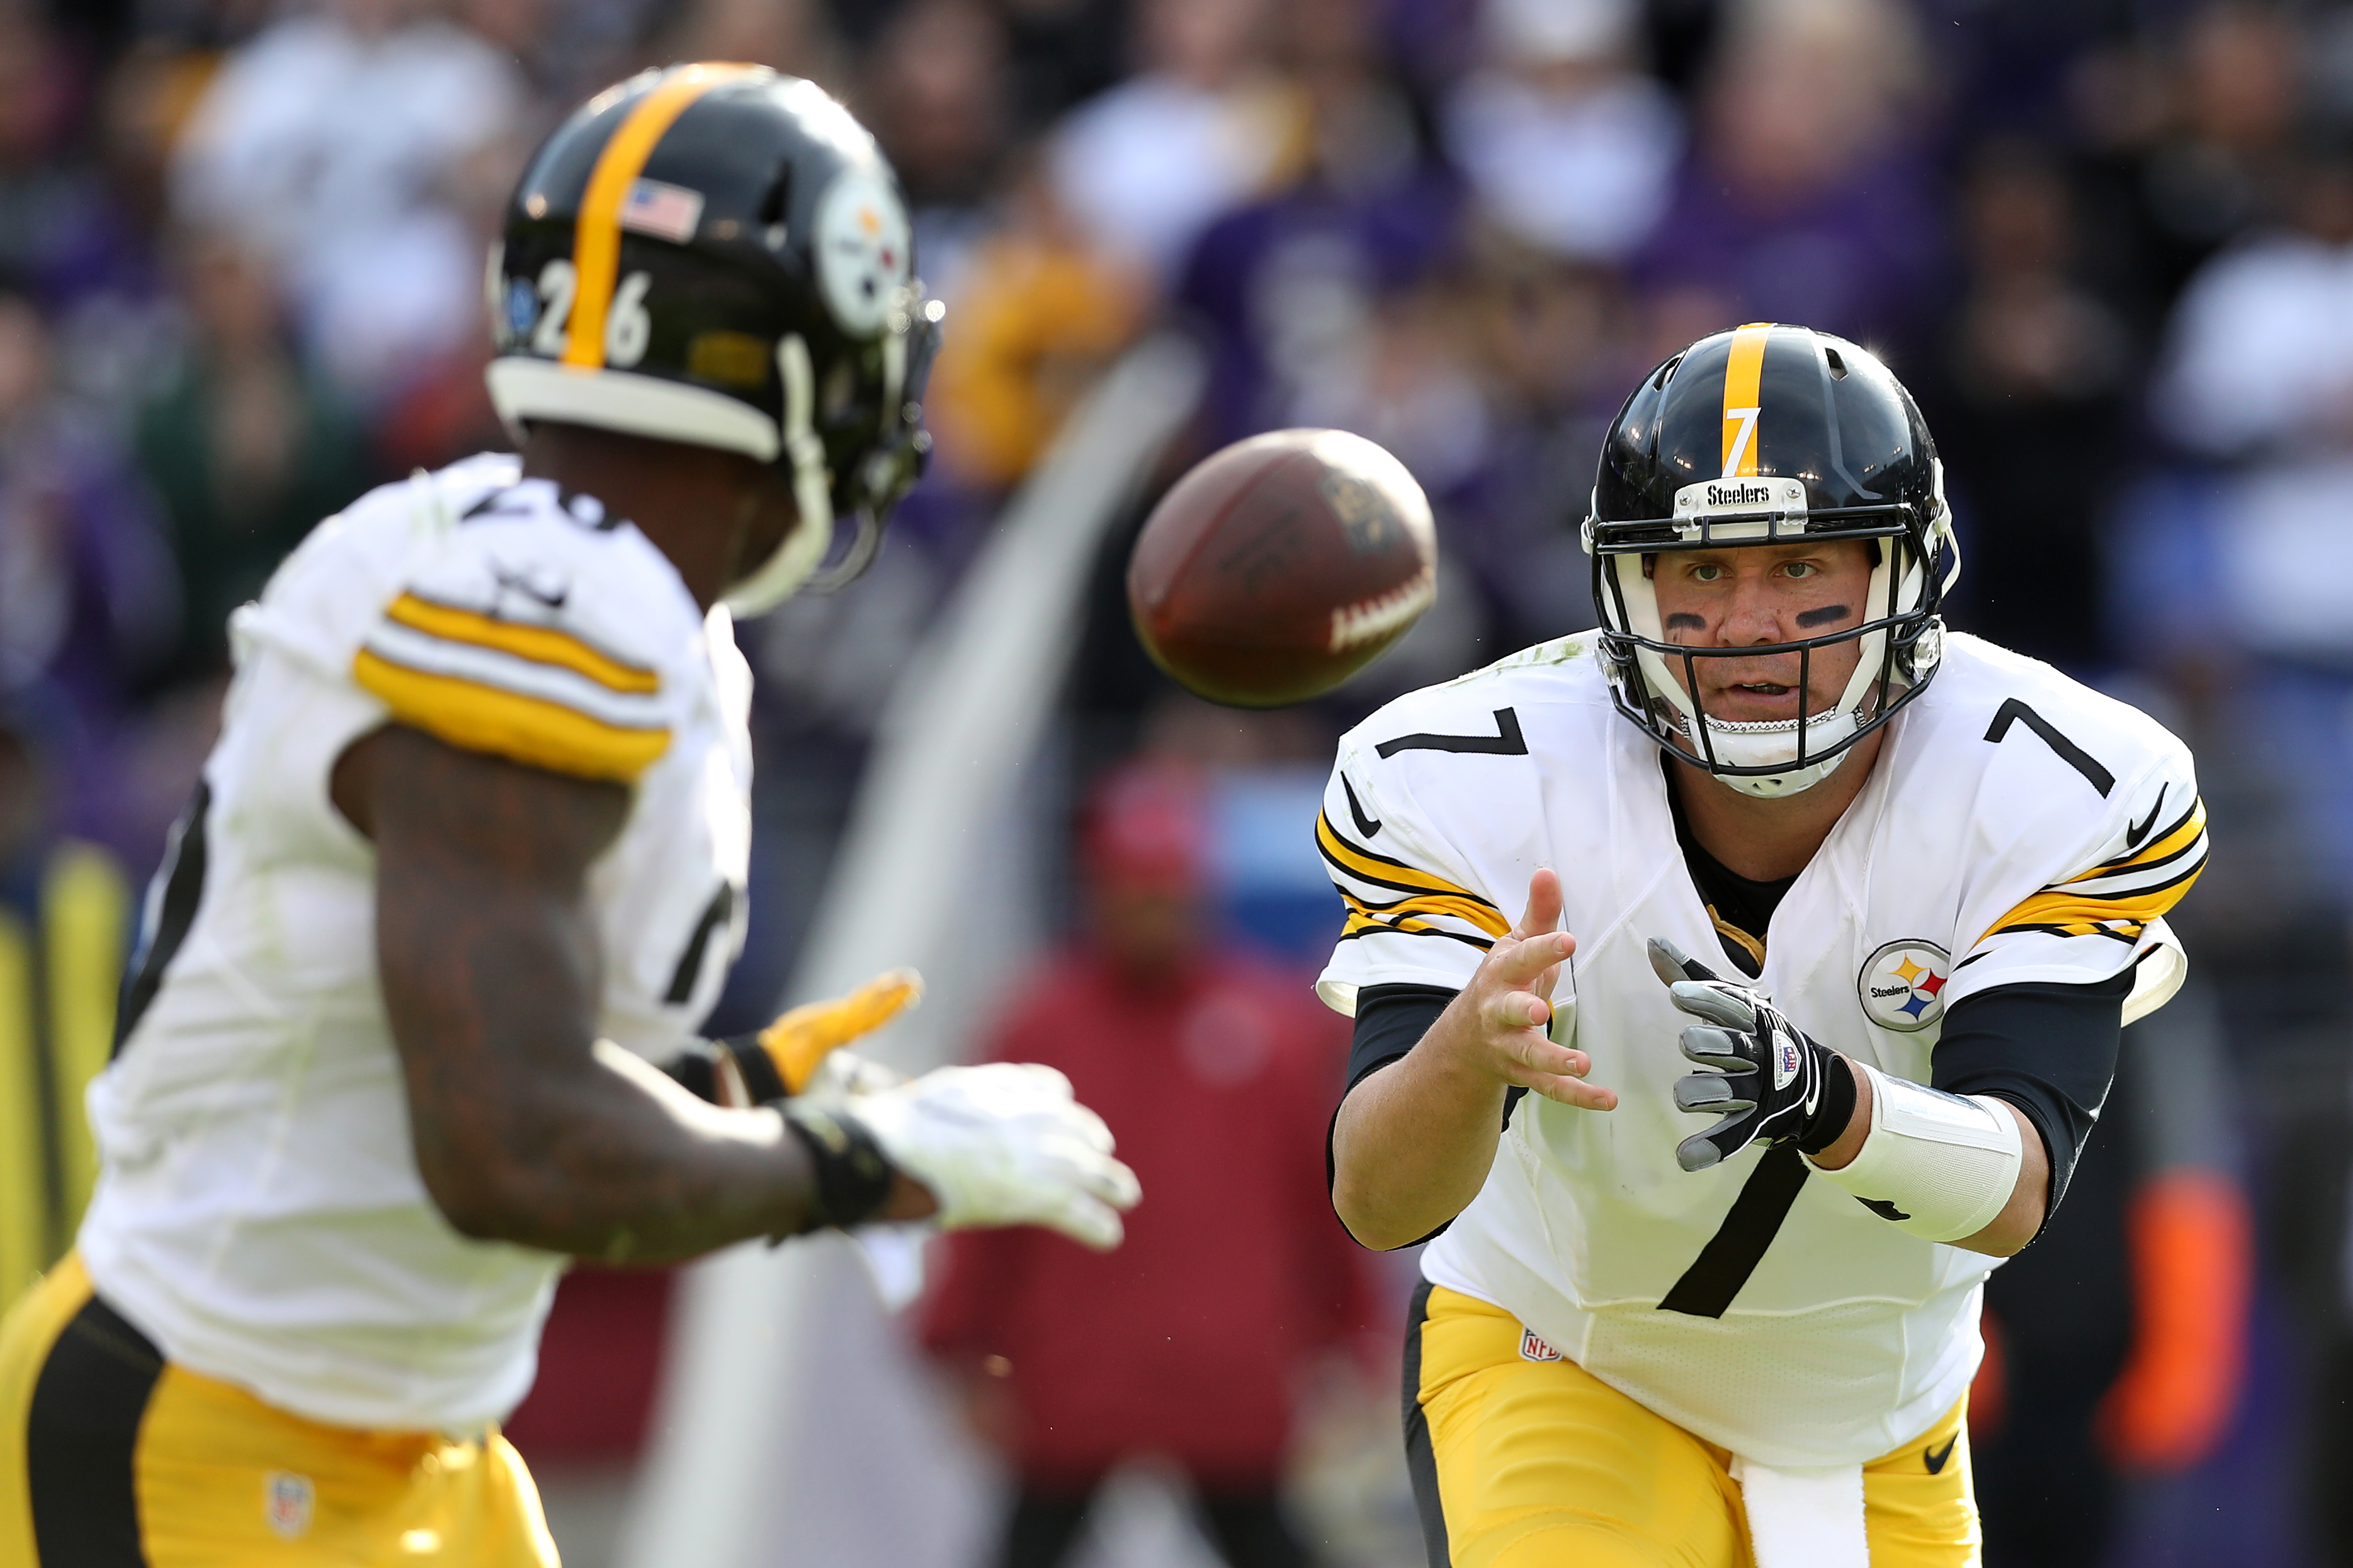 dolphins vs steelers prediction, dolphins steelers odds, dolphins steelers line, dolphins steelers spread, dolphins steelers pick against the spread, dolphins steelers wild card predictions, wildcard picks against the spread